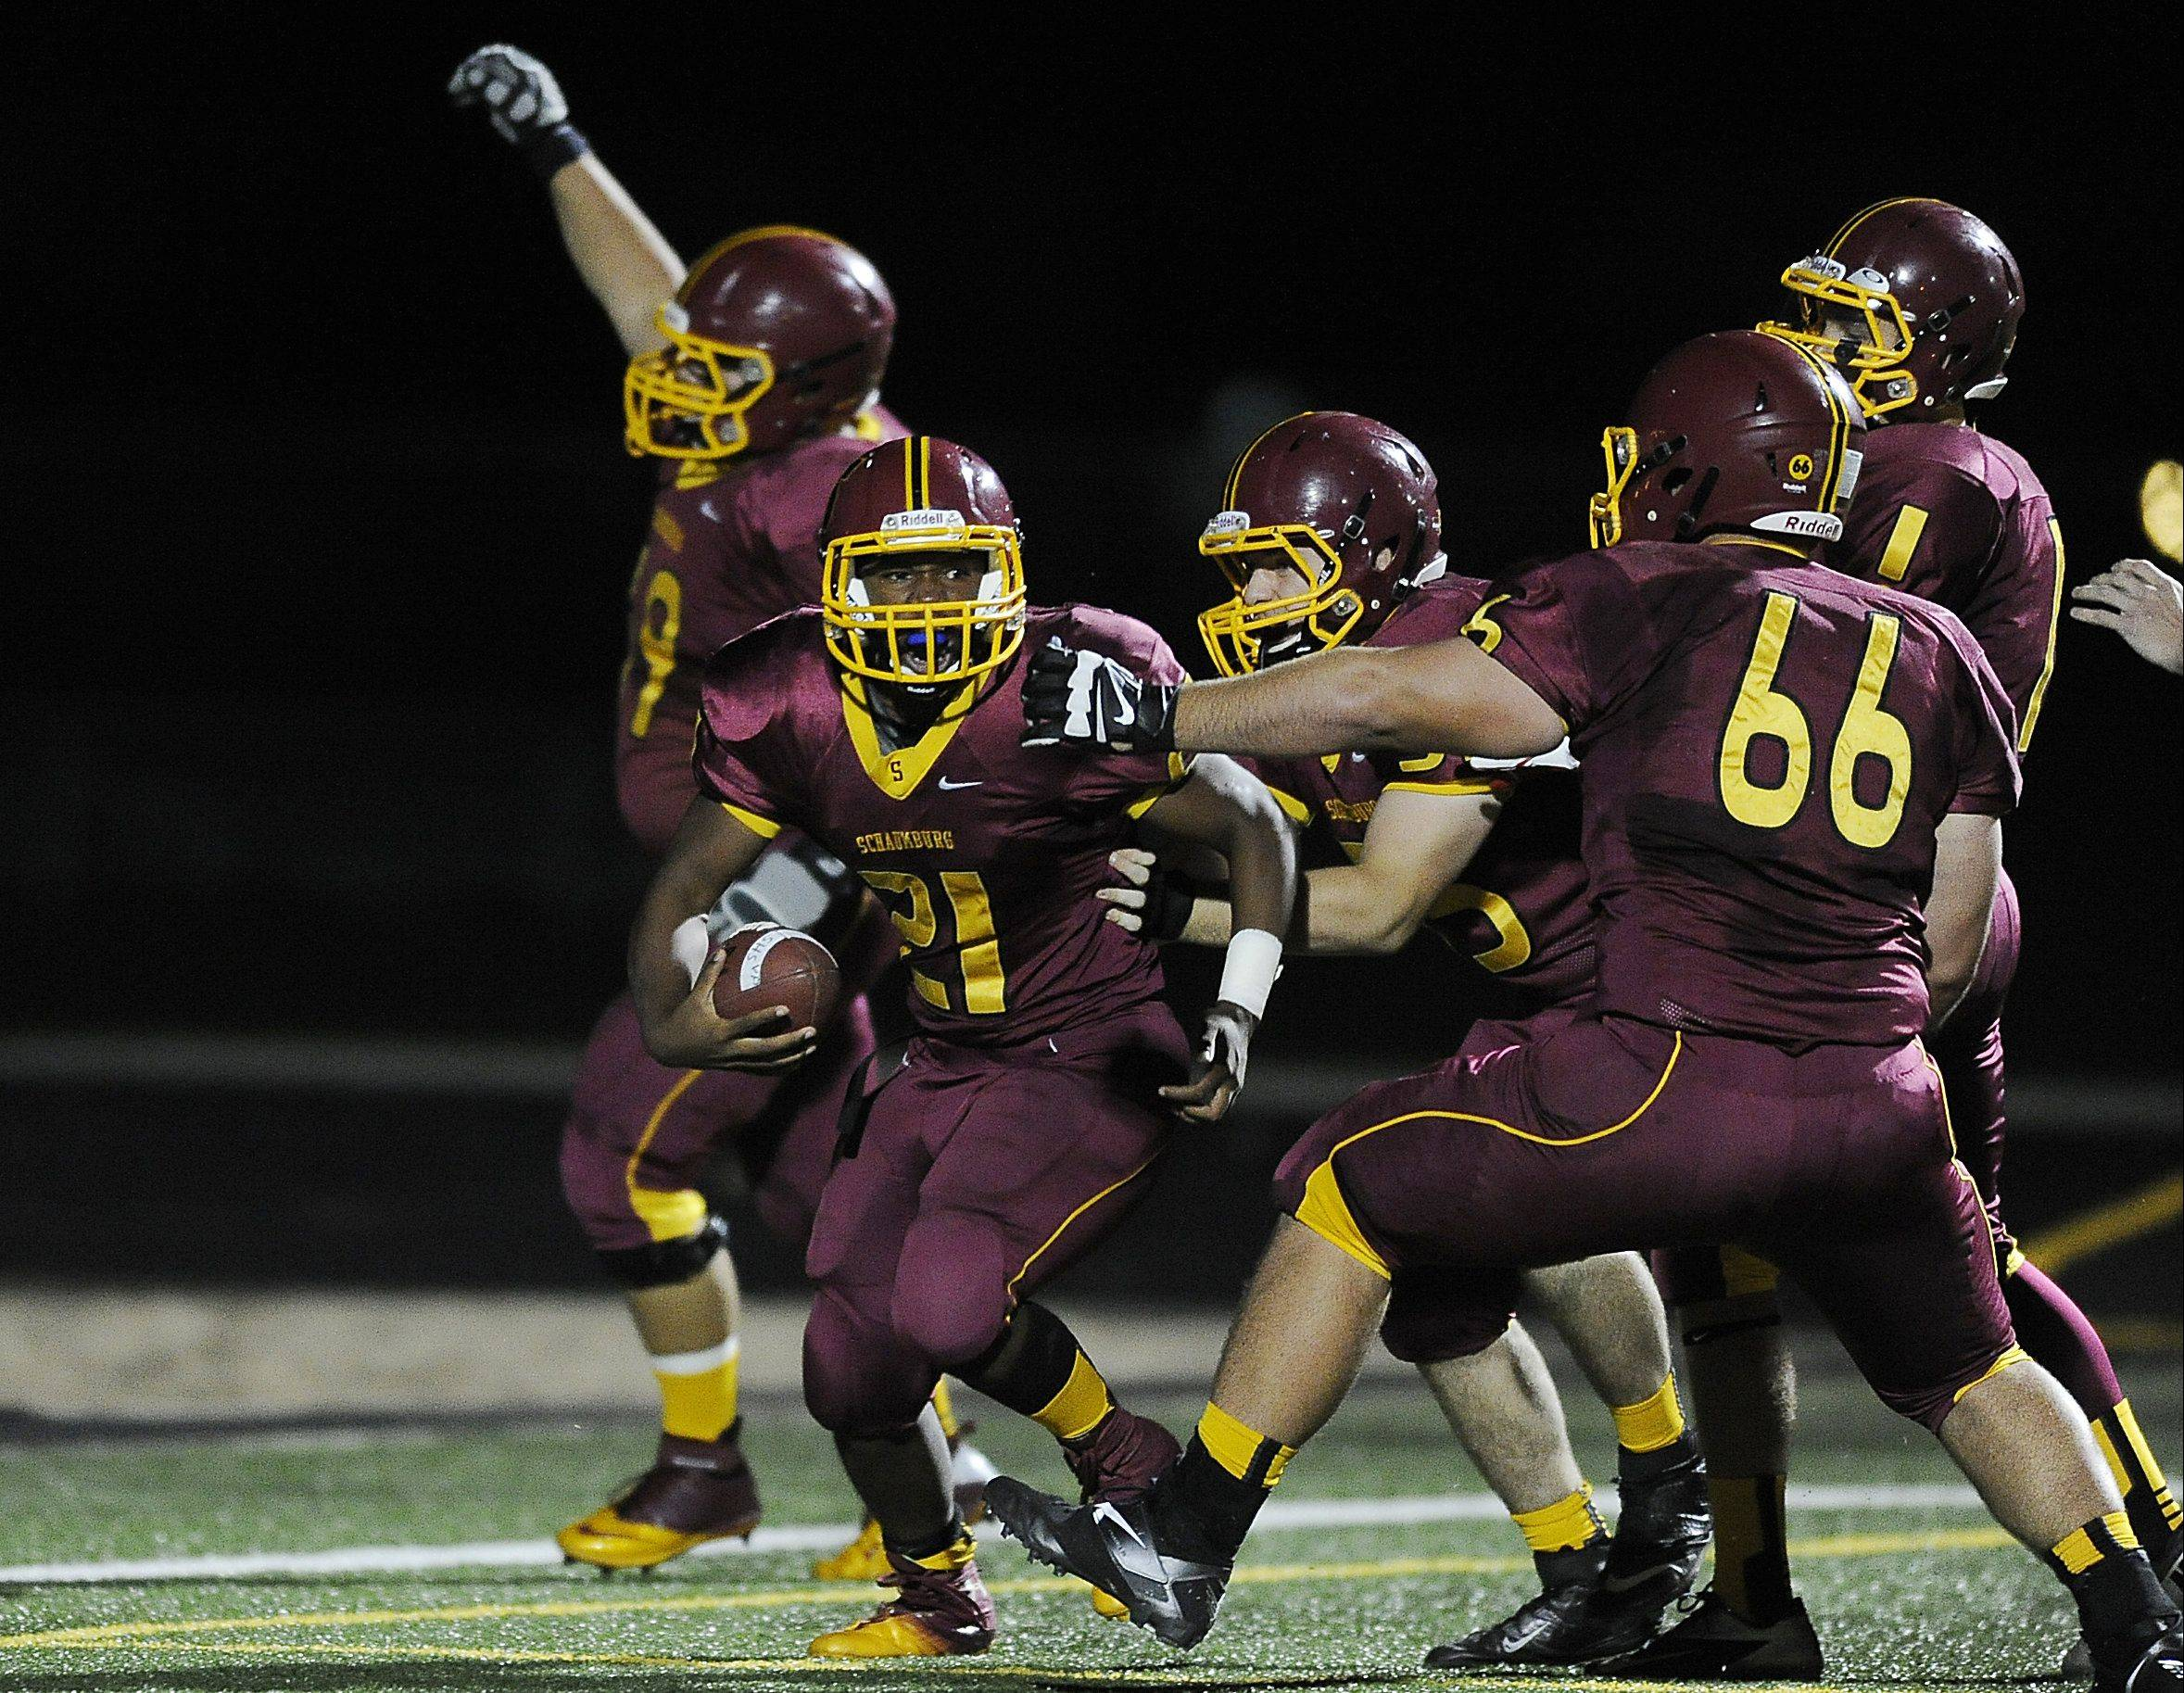 Schaumburg's Justice Macneal-Young celebrates his first quarter touchdown against Barrington with his teammates on Friday at Schaumburg.